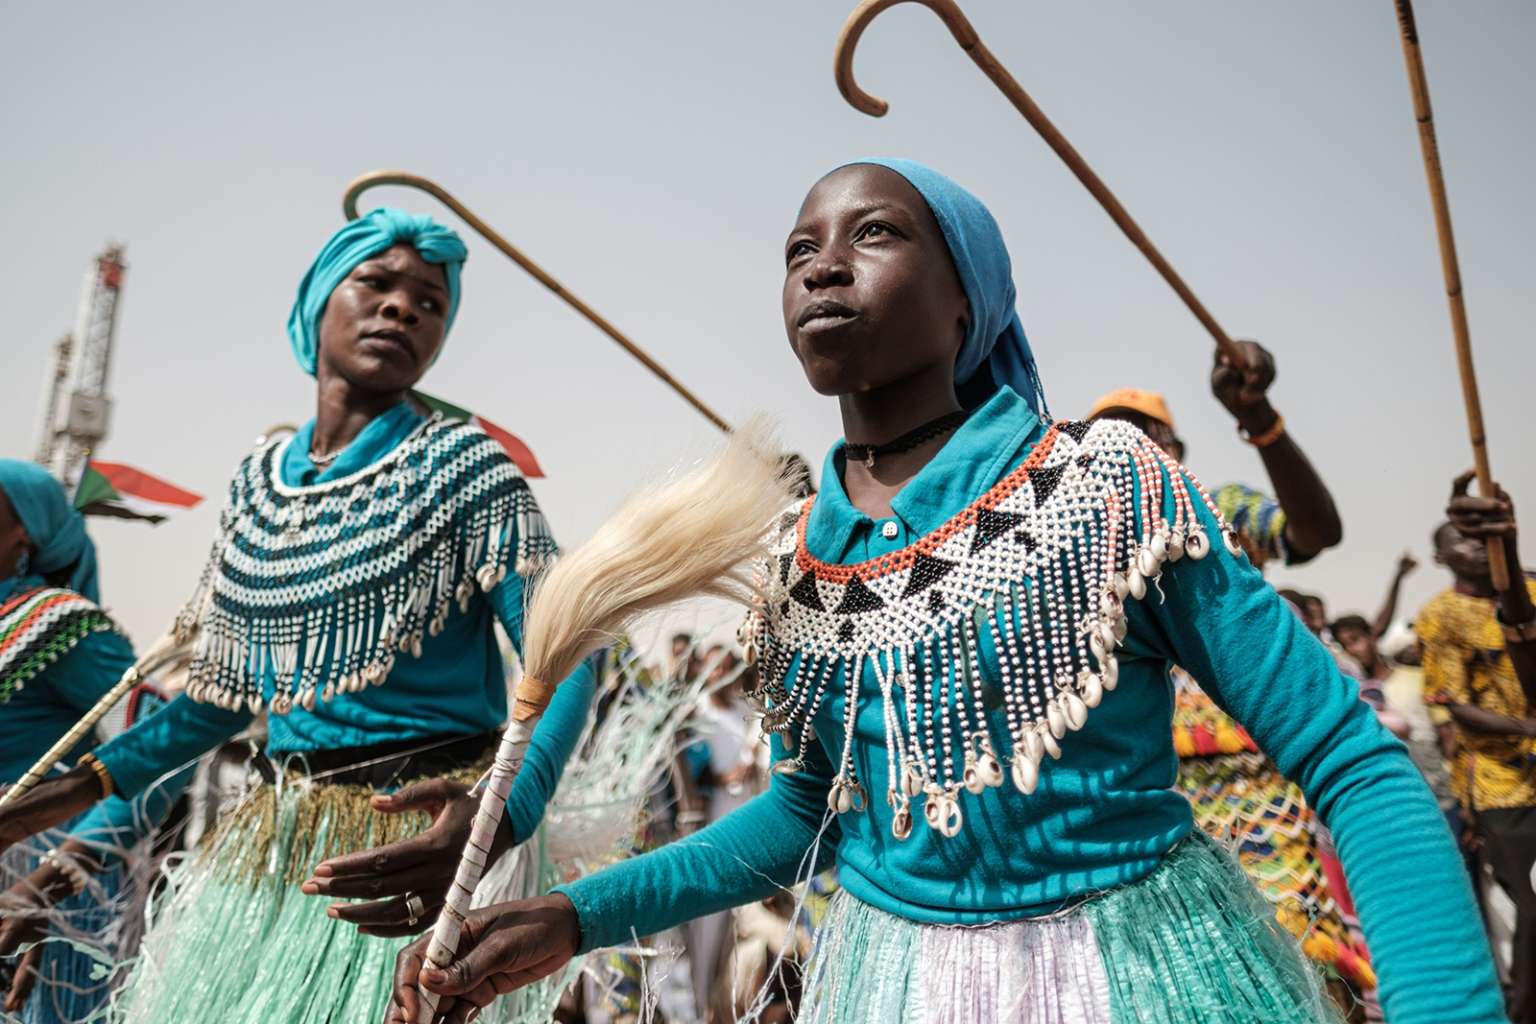 Members of a traditional music and dance group perform before a rally for supporters of Sudan's ruling Transitional Military Council in the village on June 22. YASUYOSHI CHIBA/AFP/Getty Images